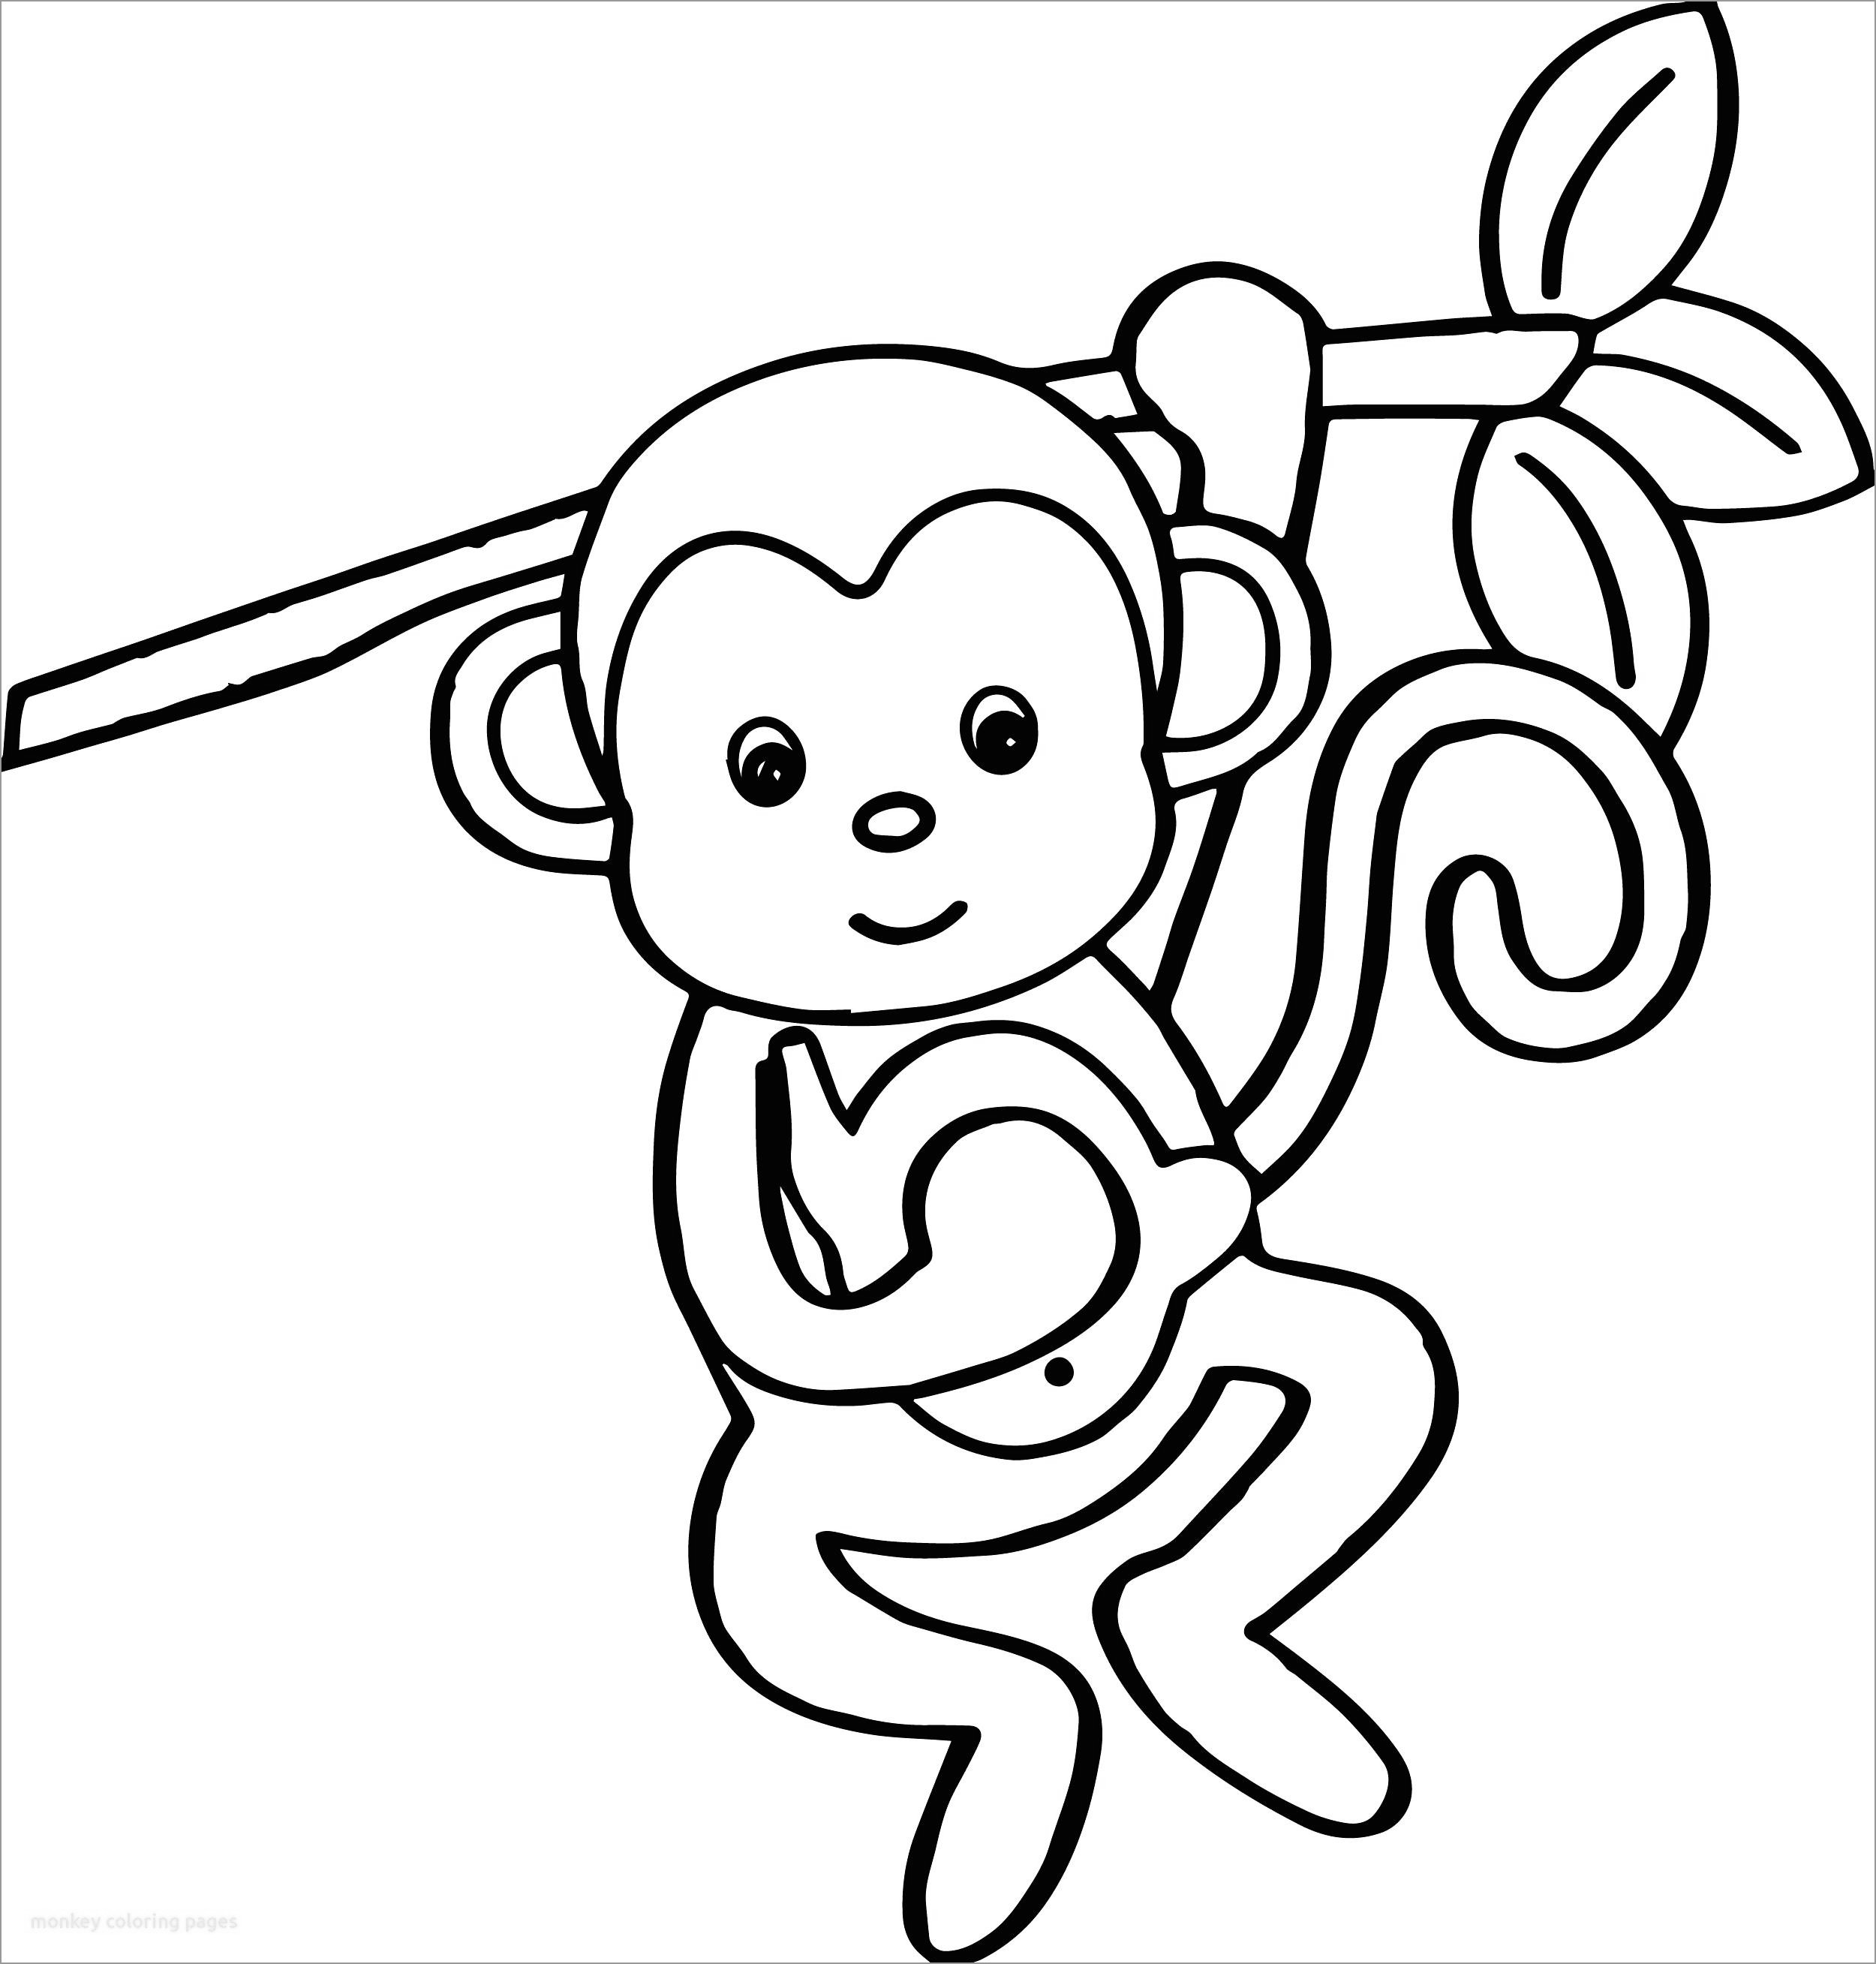 Monkey In A Tree Coloring Page - ColoringBay